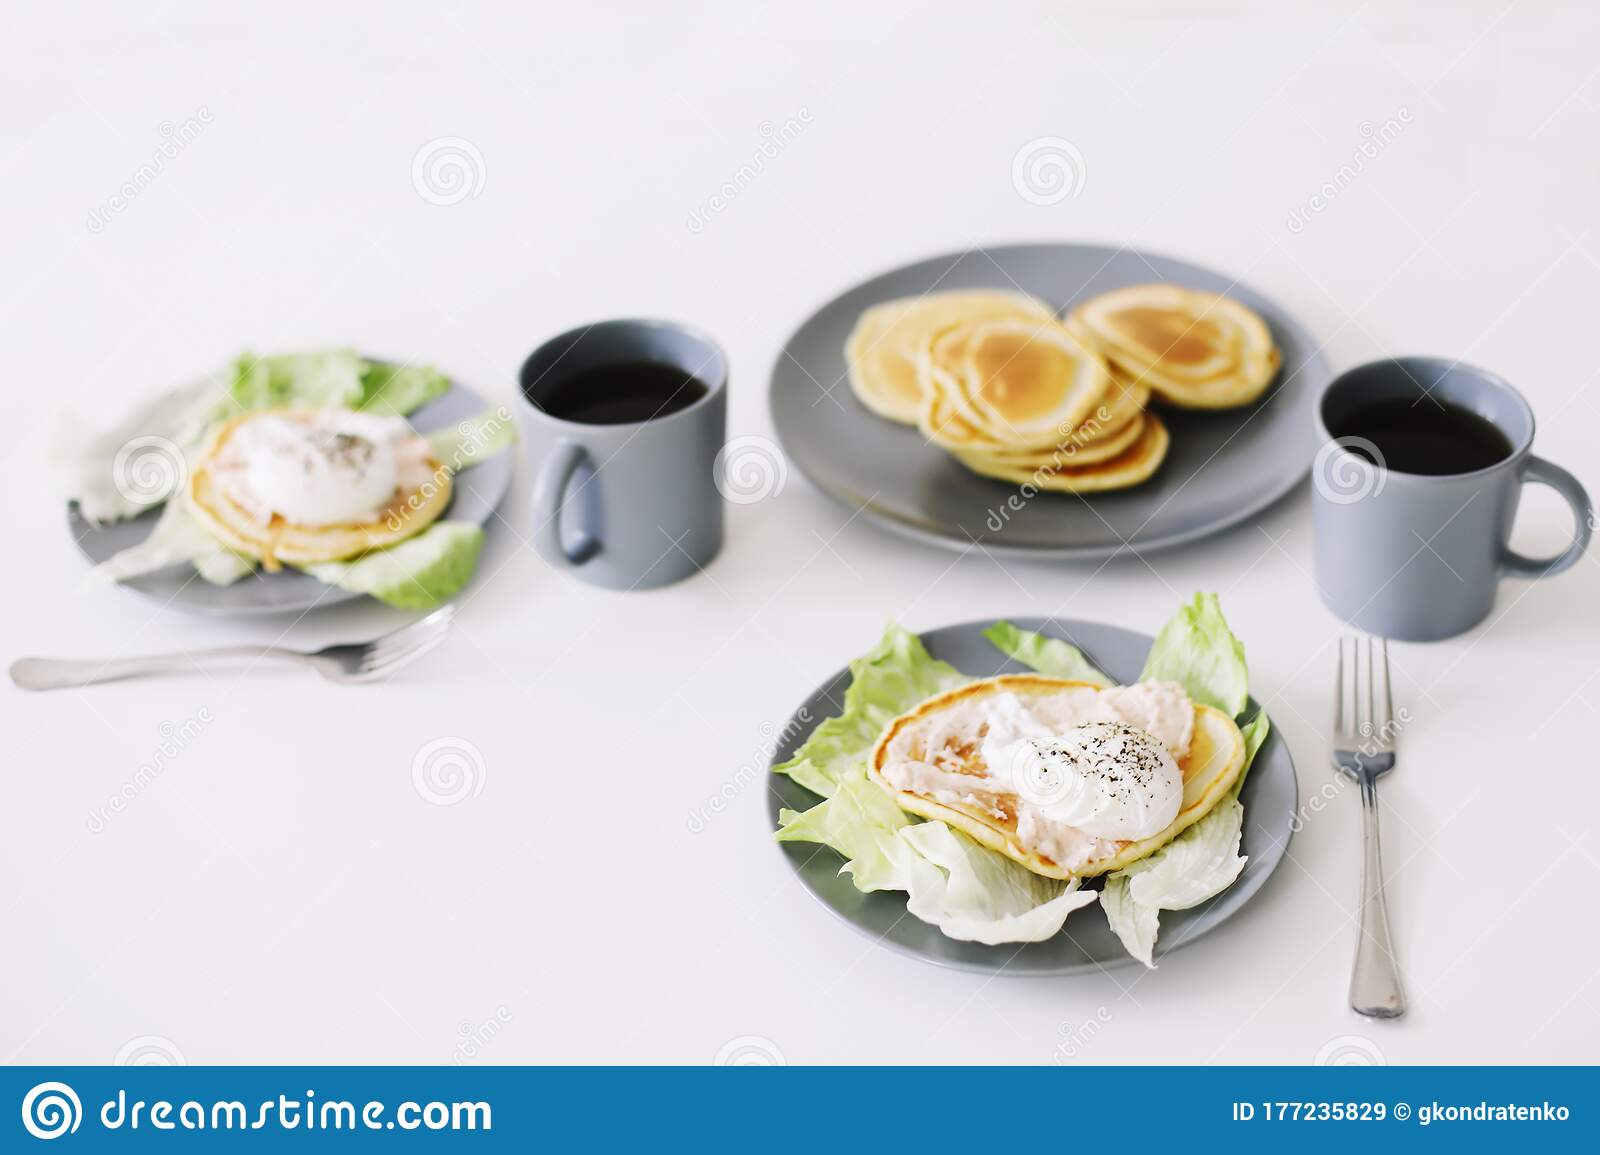 Healthy Nutritious Tasty Breakfast Pancakes Poached Egg On Ceramic Plate And Coffee Cup Table Setting Food Photo Good Morning Stock Image Image Of Coffee Health 177235829